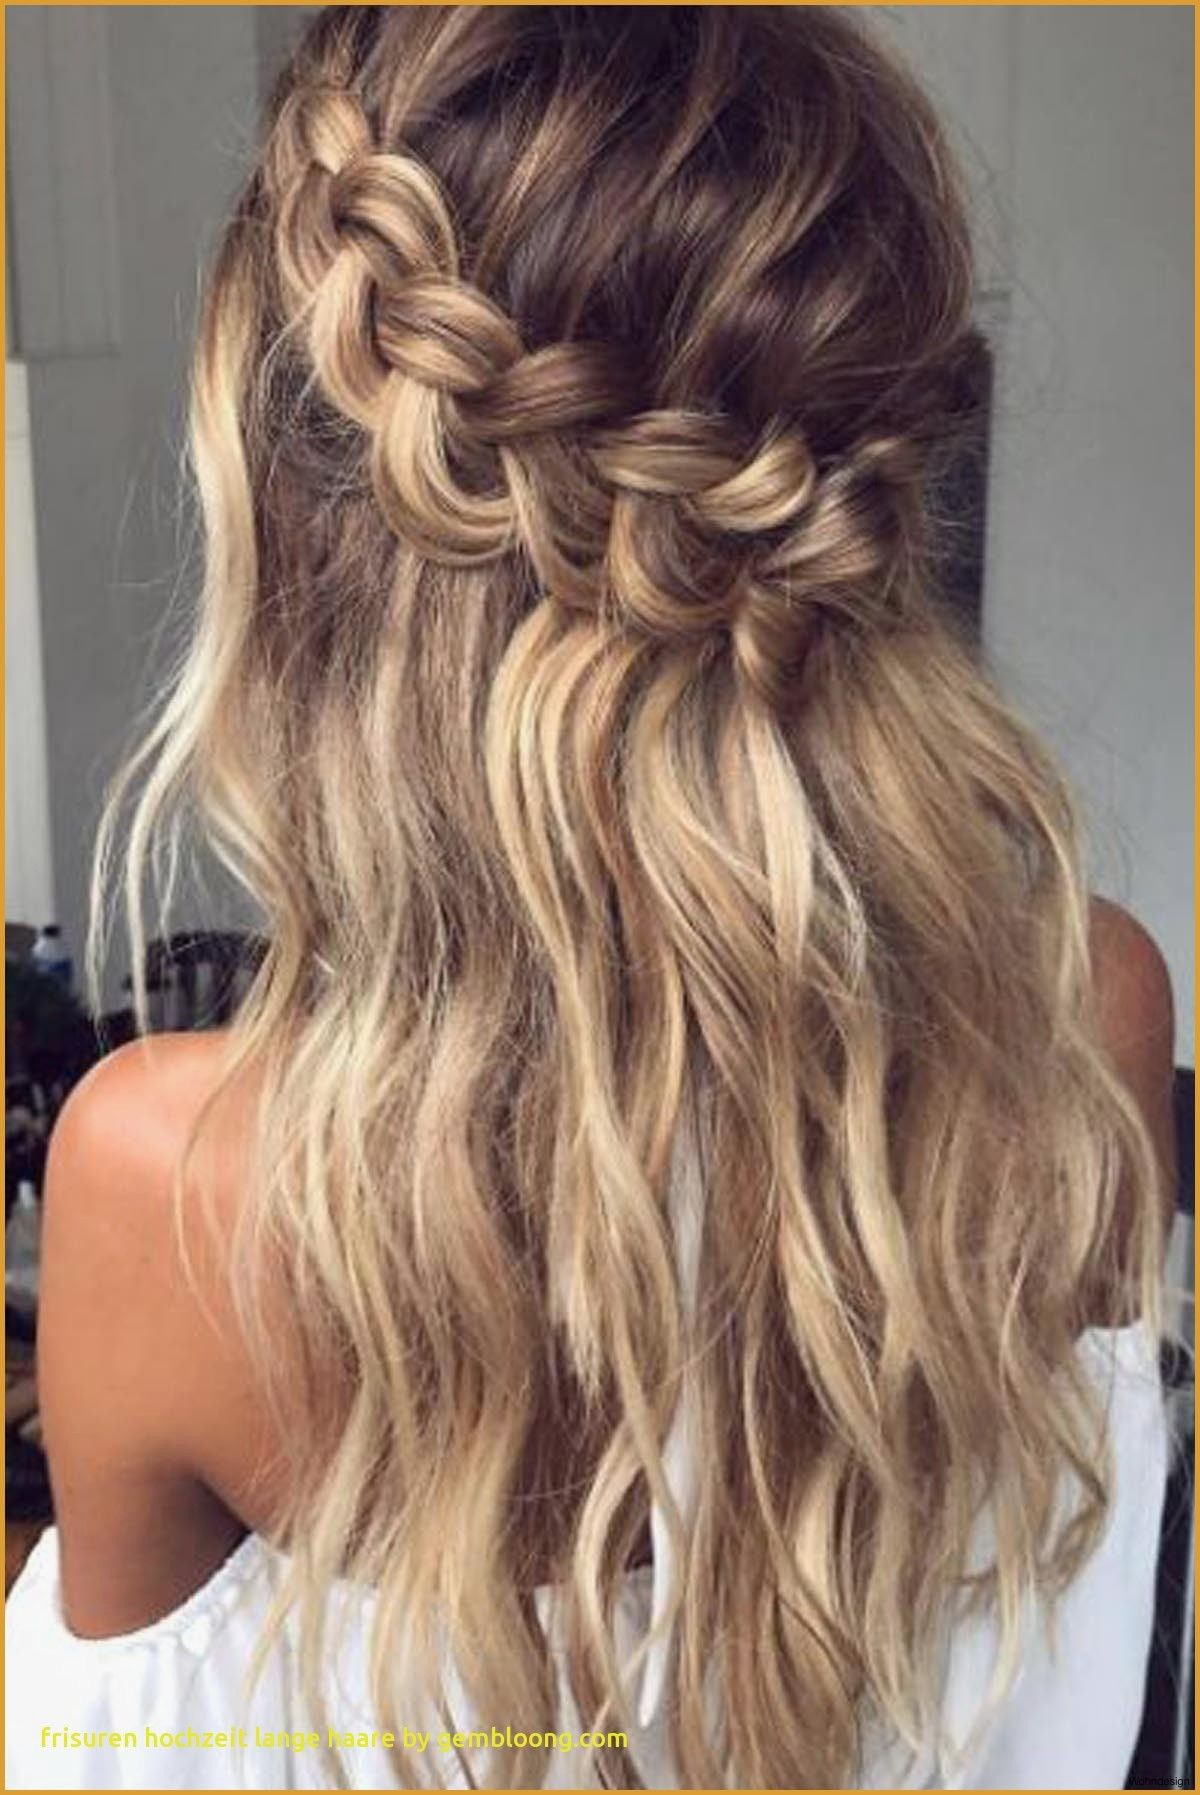 hairstyles wedding guest #guest #hairstyles #wedding